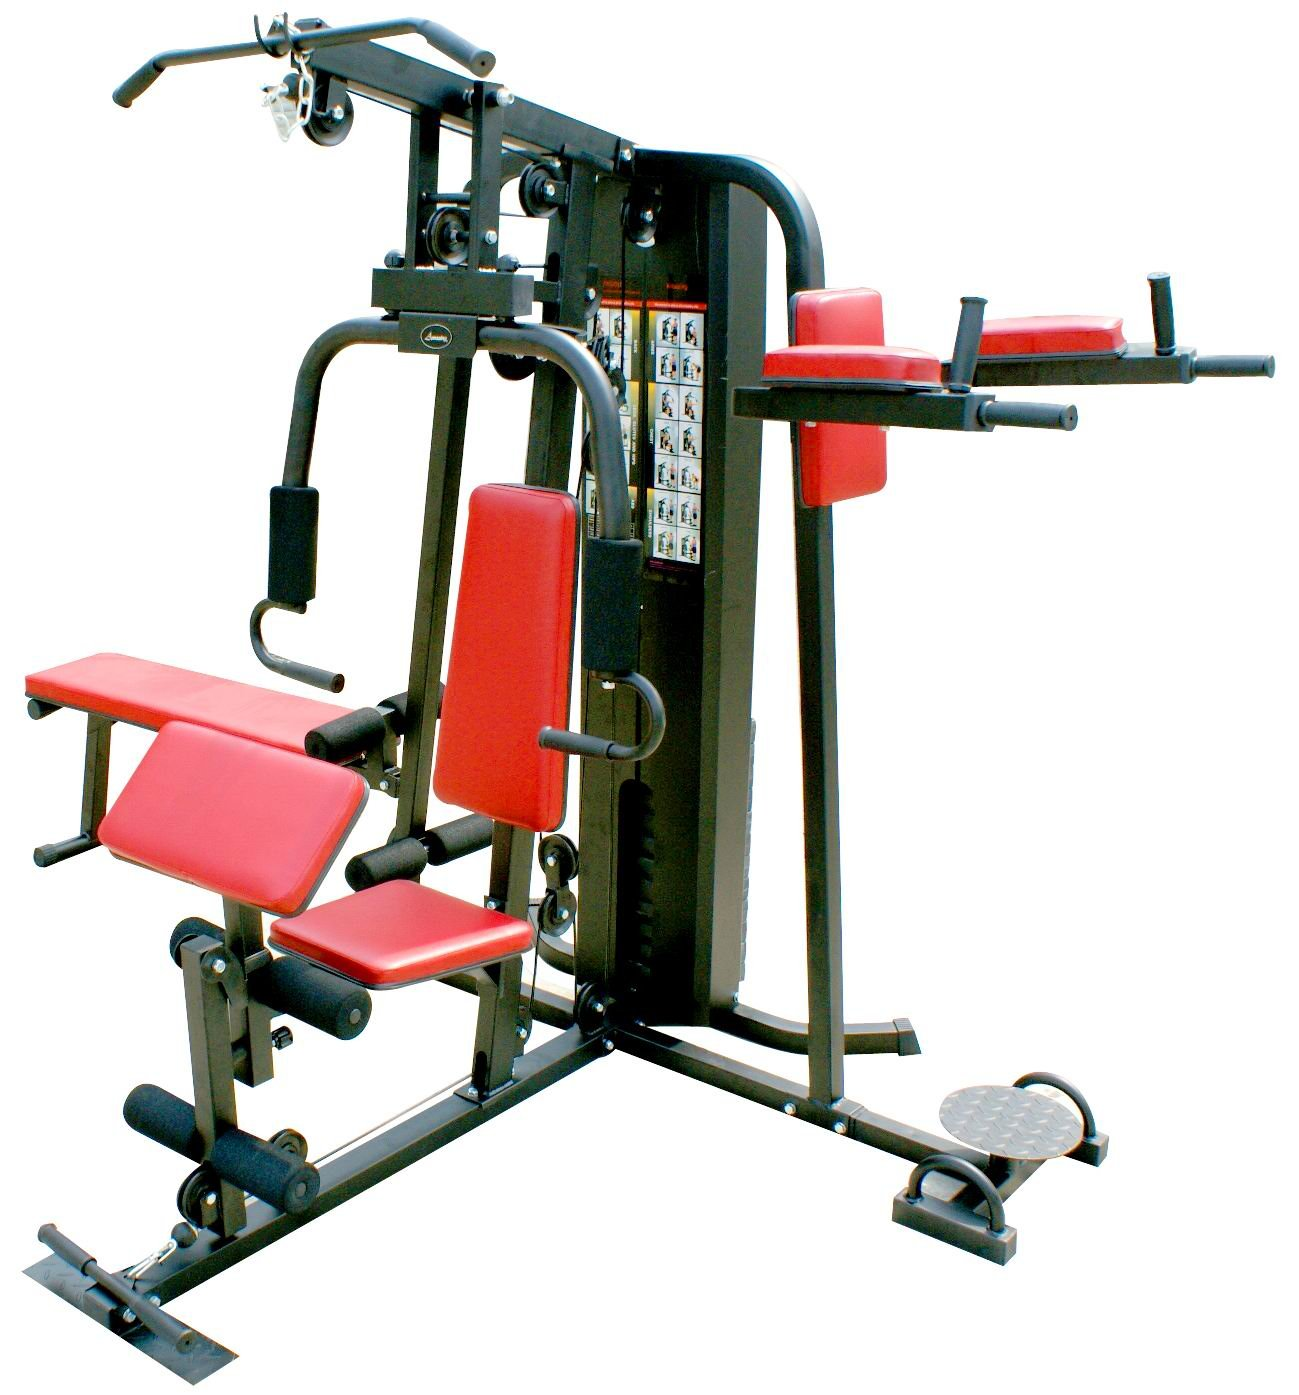 Exercise equipment in san ramon warehouse